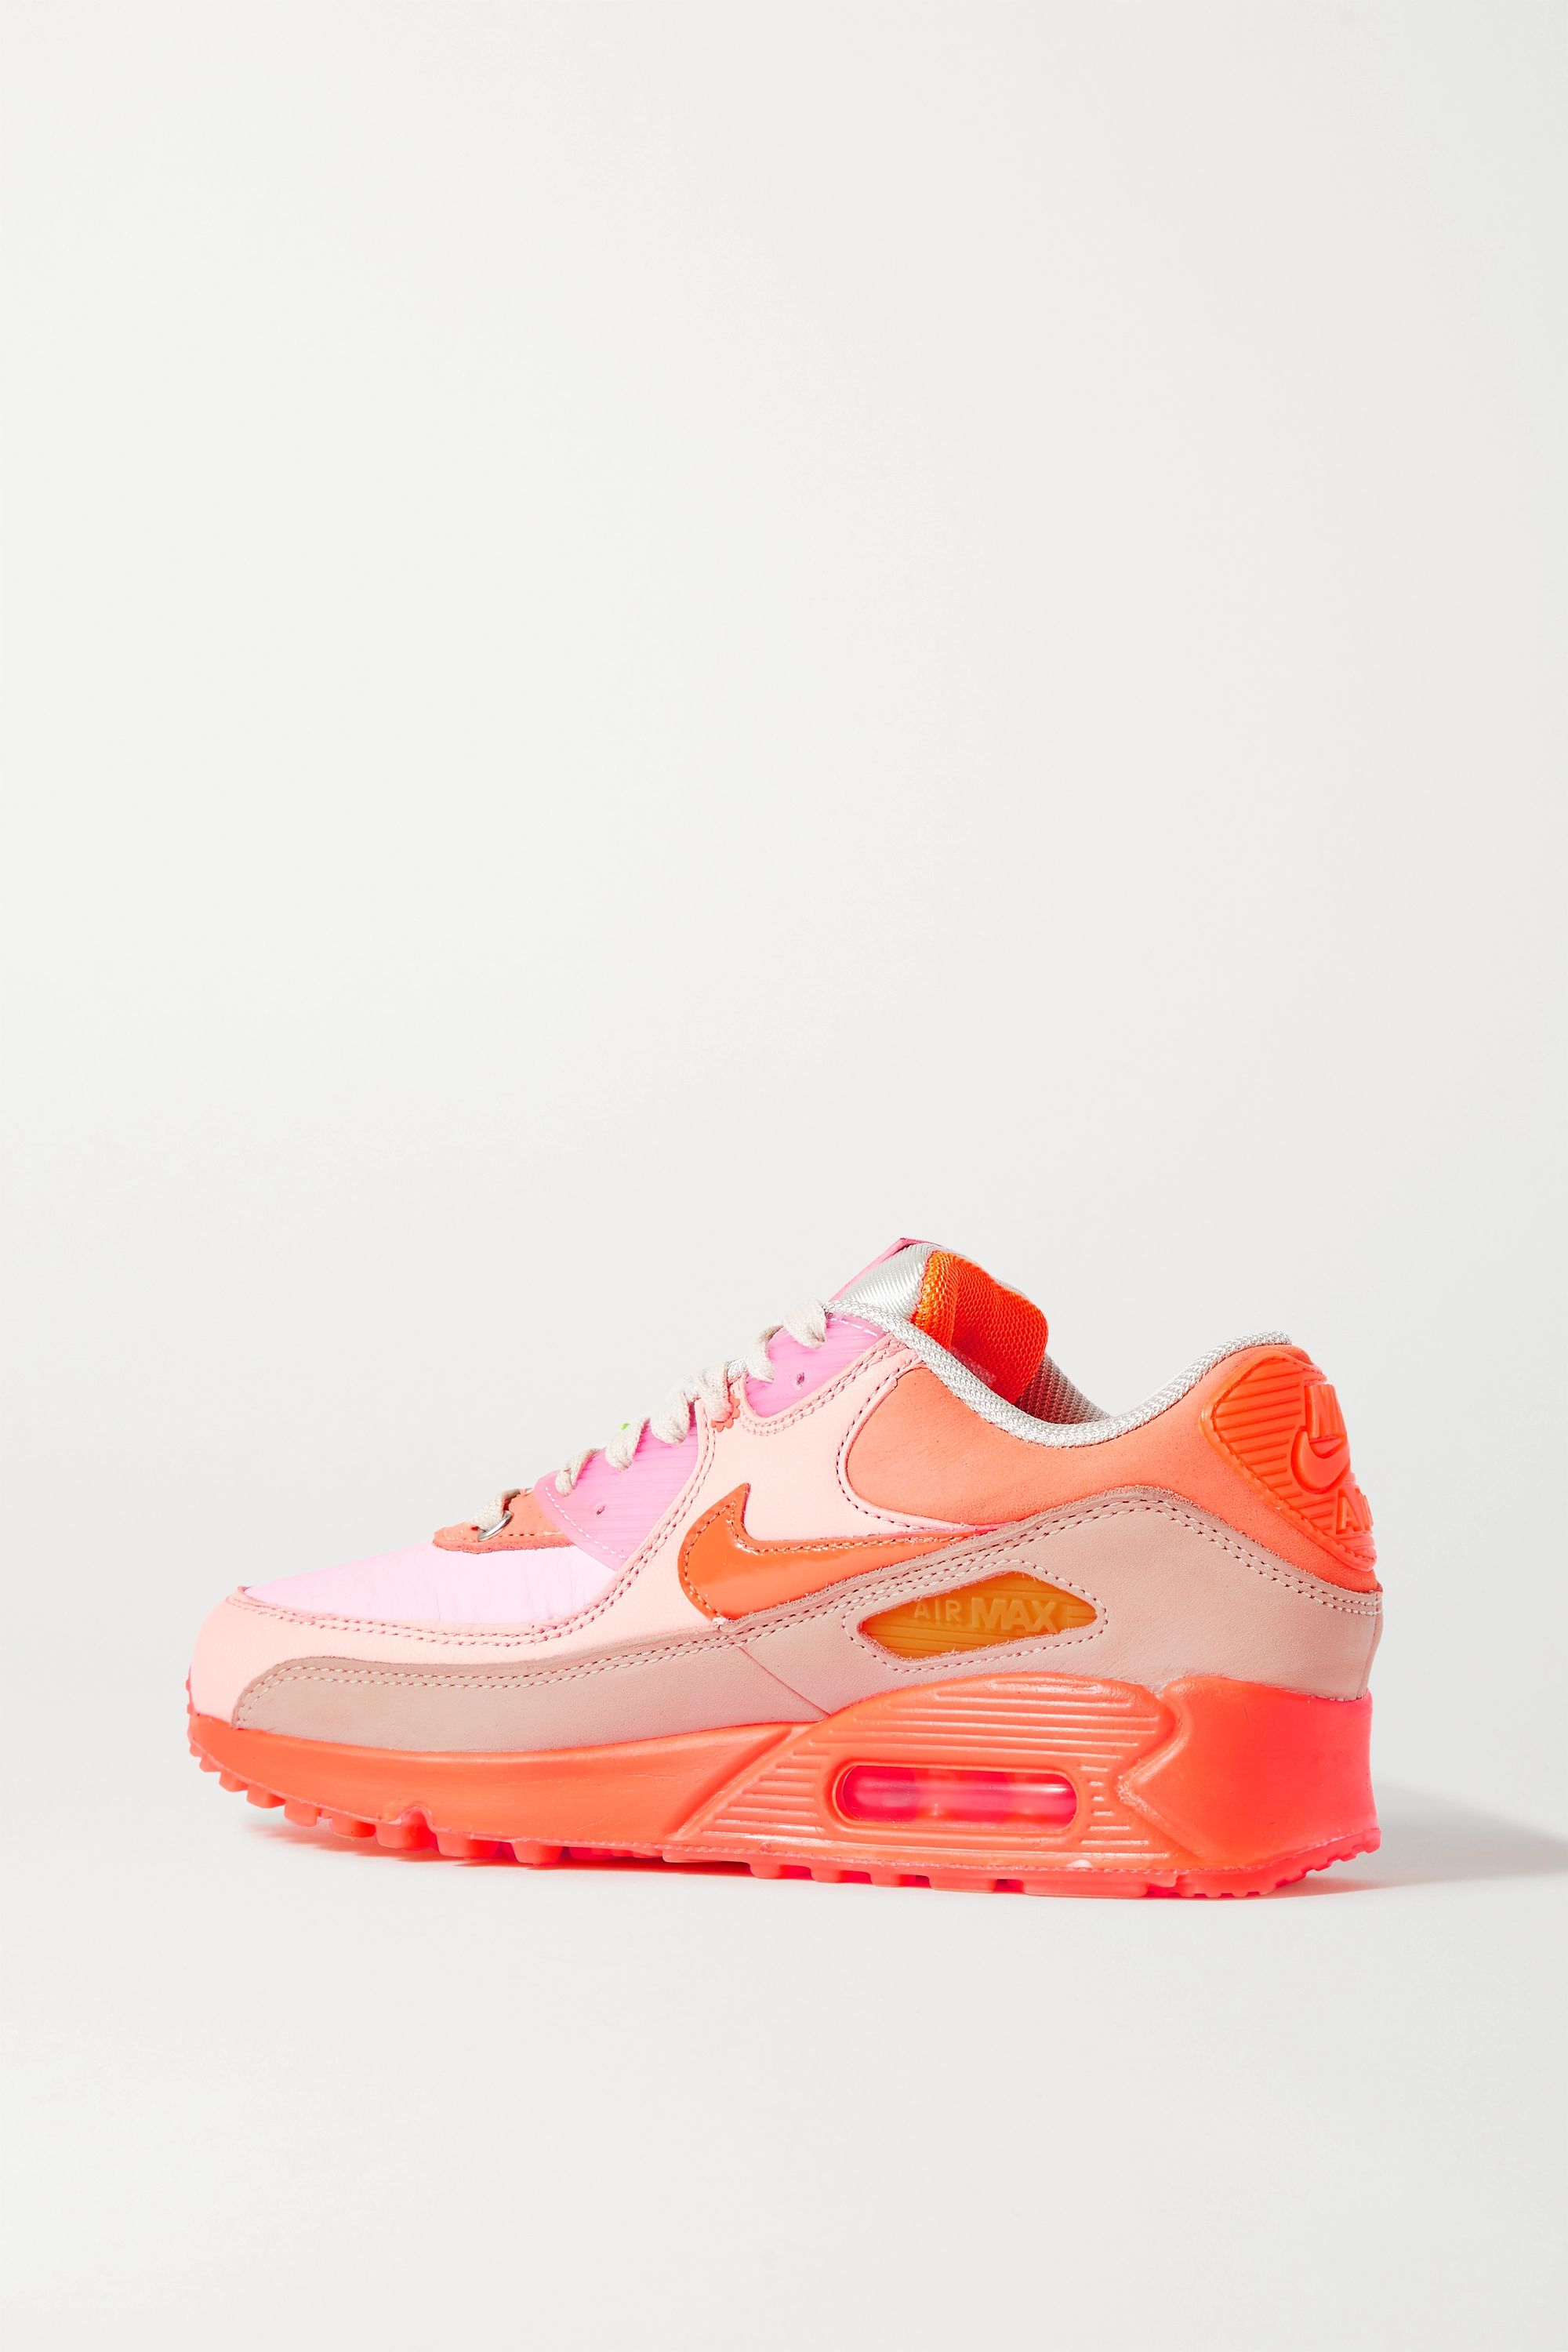 Nike Nike Air Max 90 leather and rubber sneakers